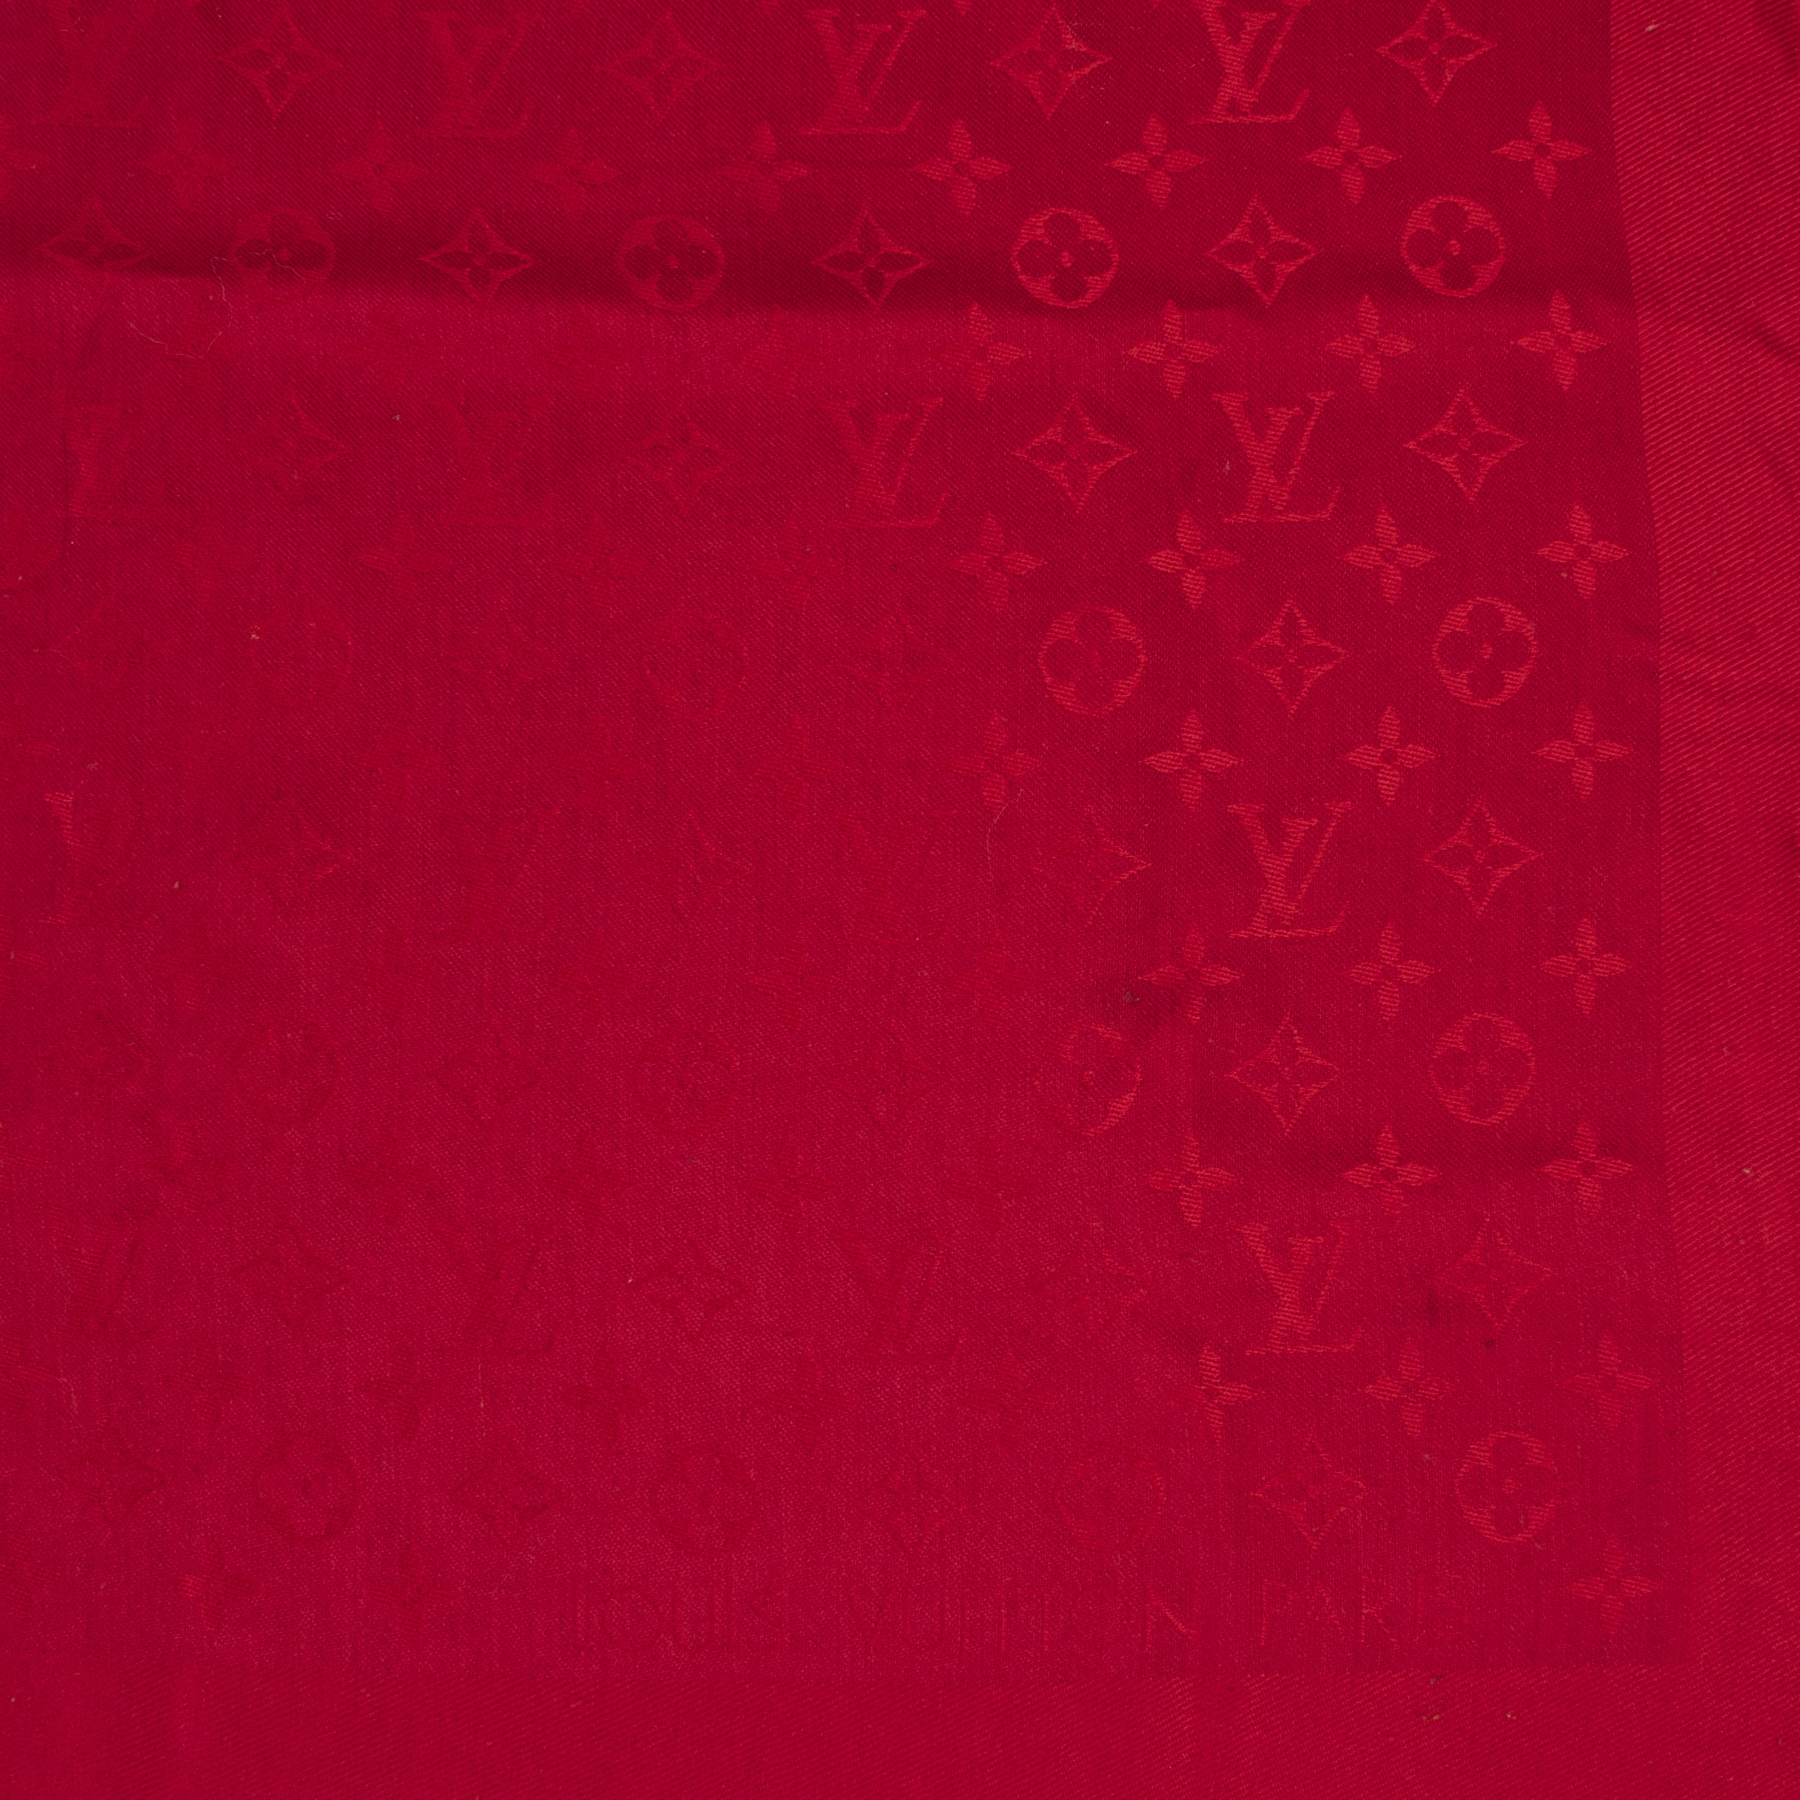 We buy and sell your authentic designe Louis Vuitton Red Monogram Scarf for the best price online at Labellov secondhand luxury in Antwerp Belgium